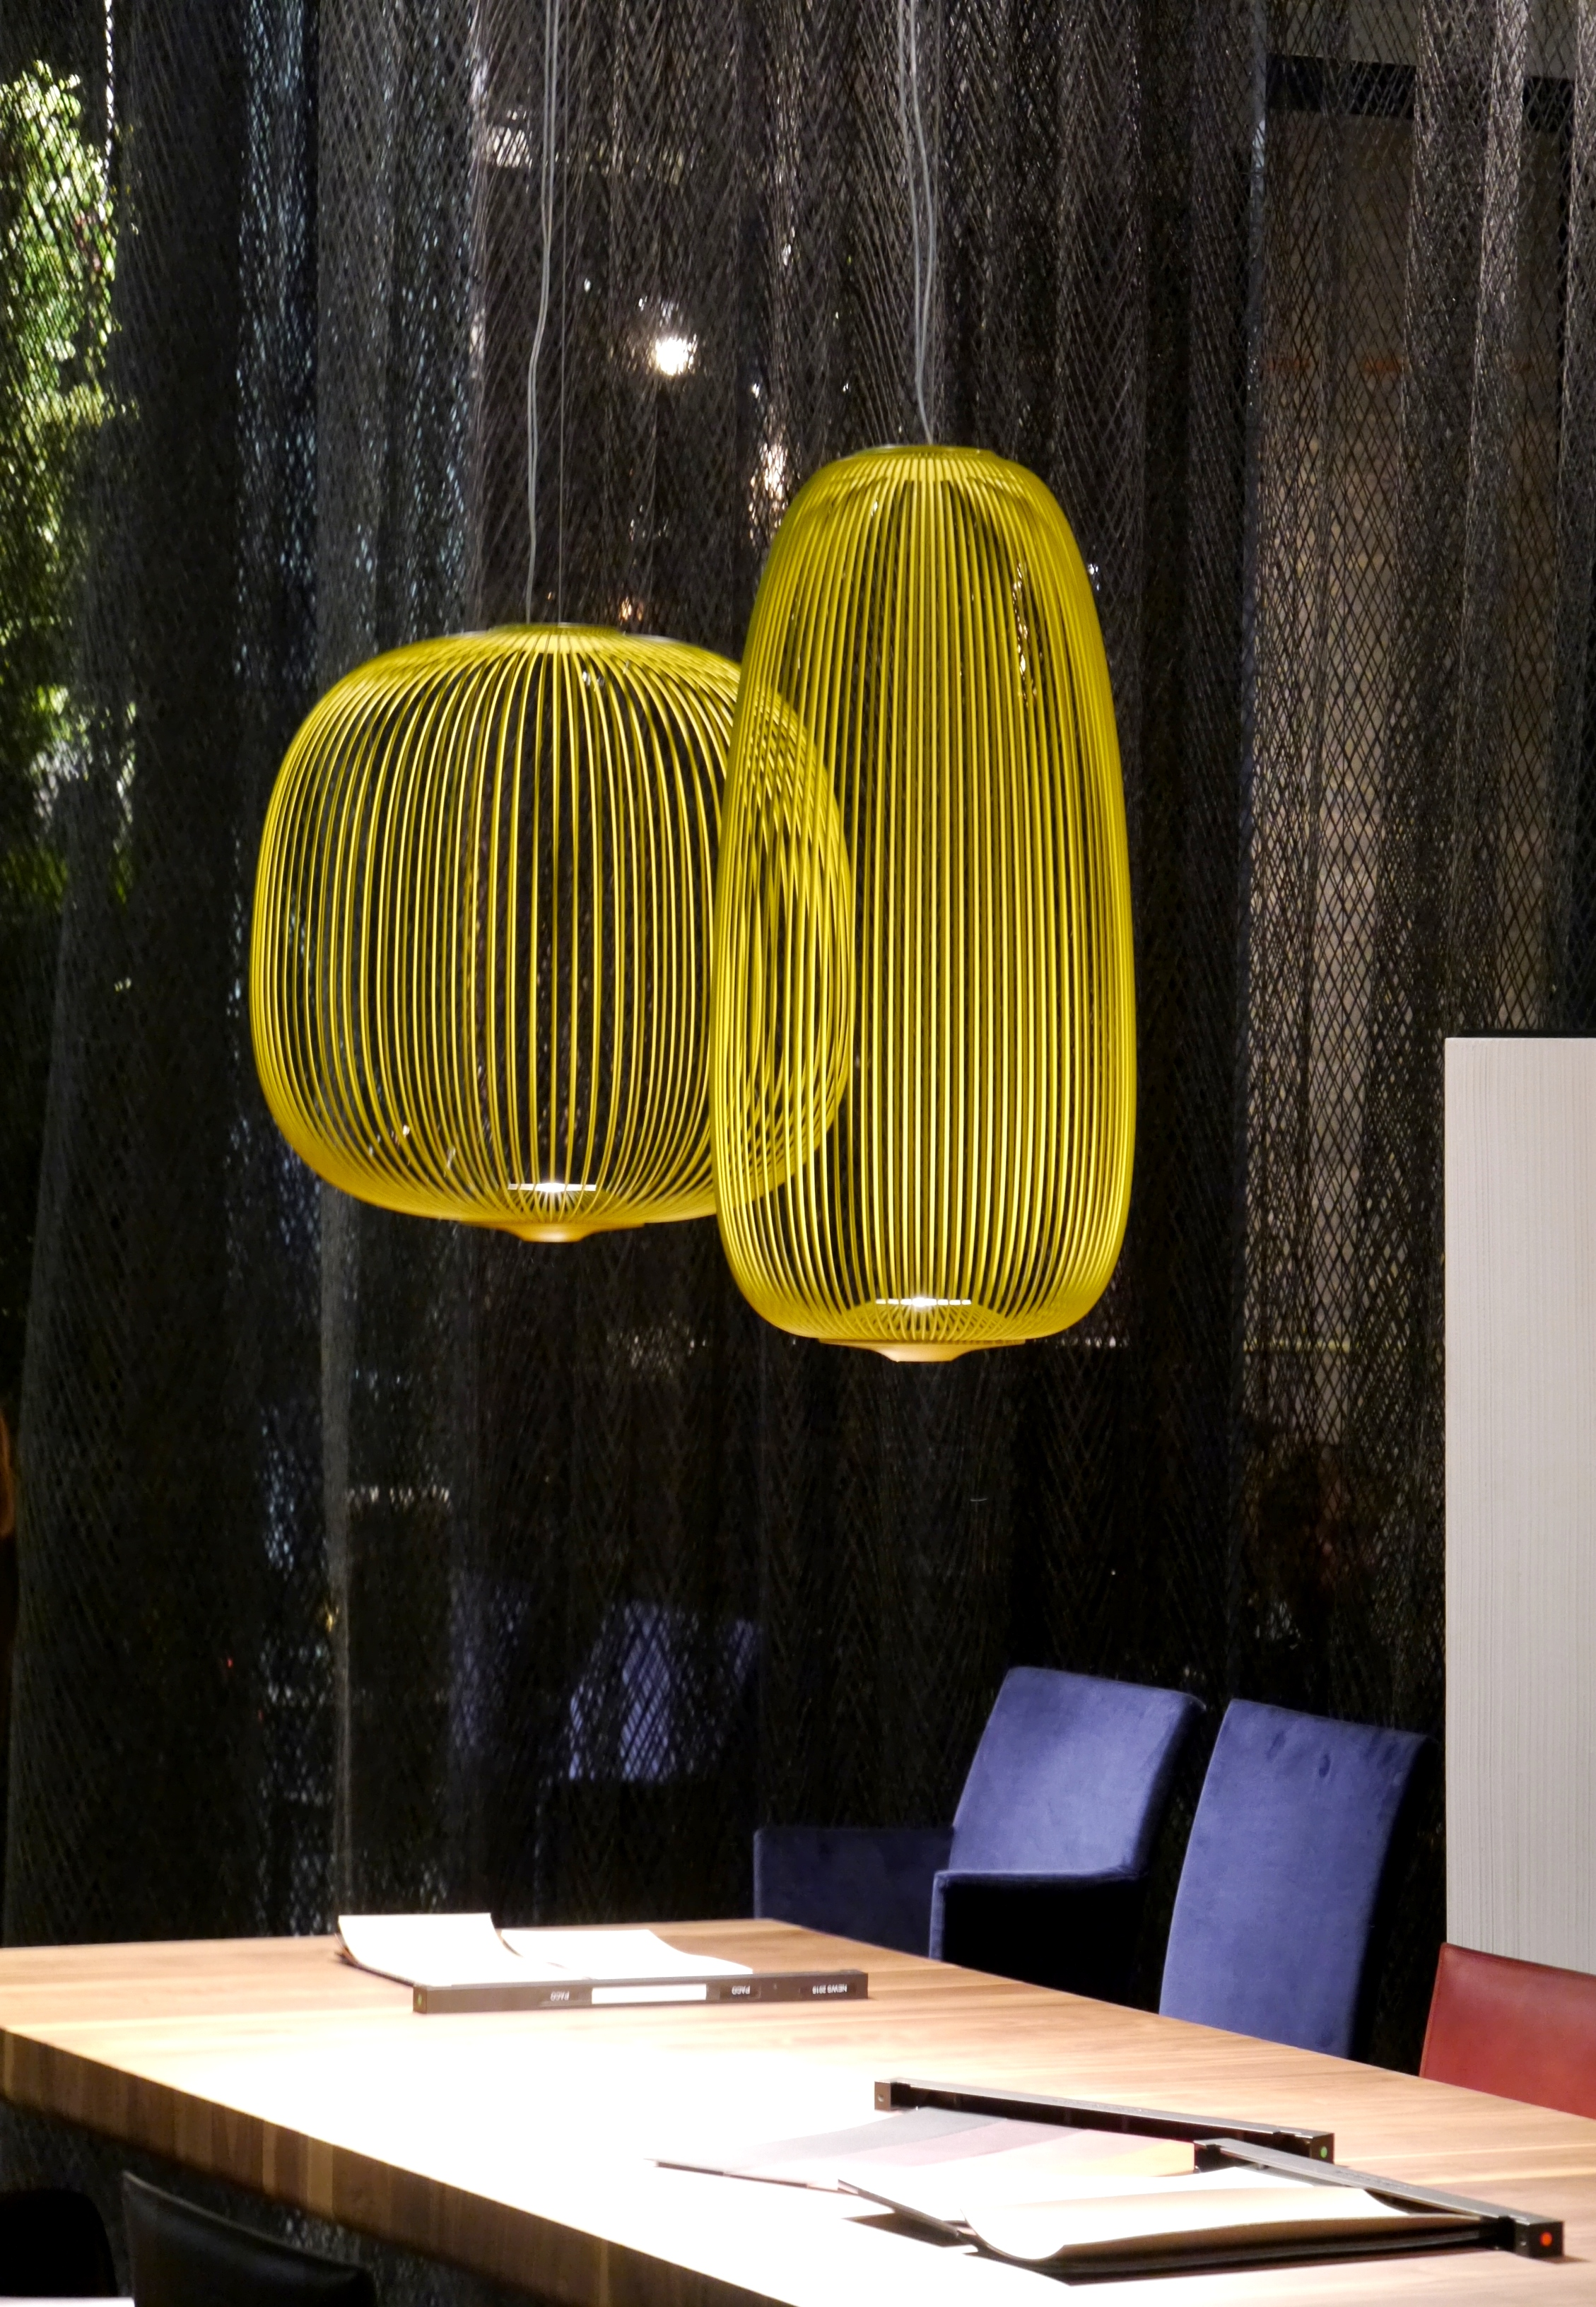 imm cologne ii foscarini spokes kunstlicht annelie scherschel. Black Bedroom Furniture Sets. Home Design Ideas